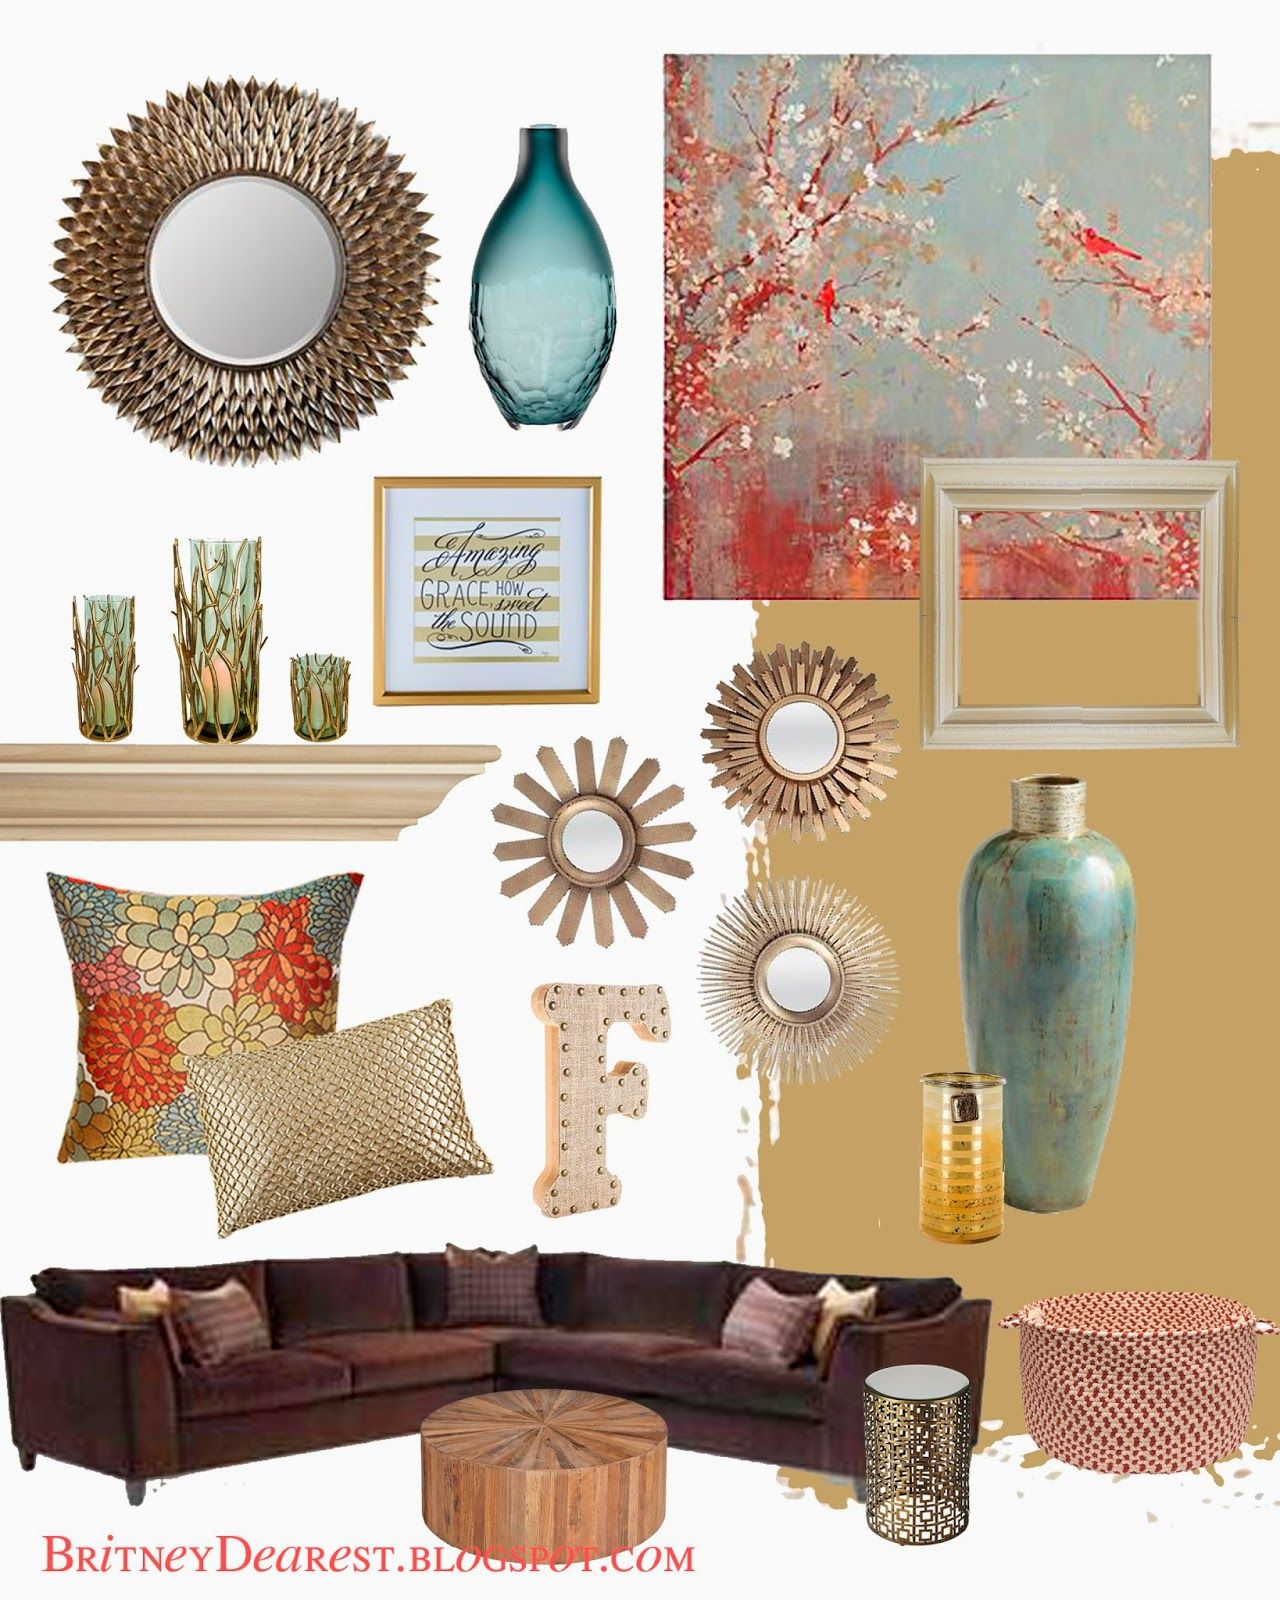 Living Room Style Ideas {Home Interior Mood Board} Home